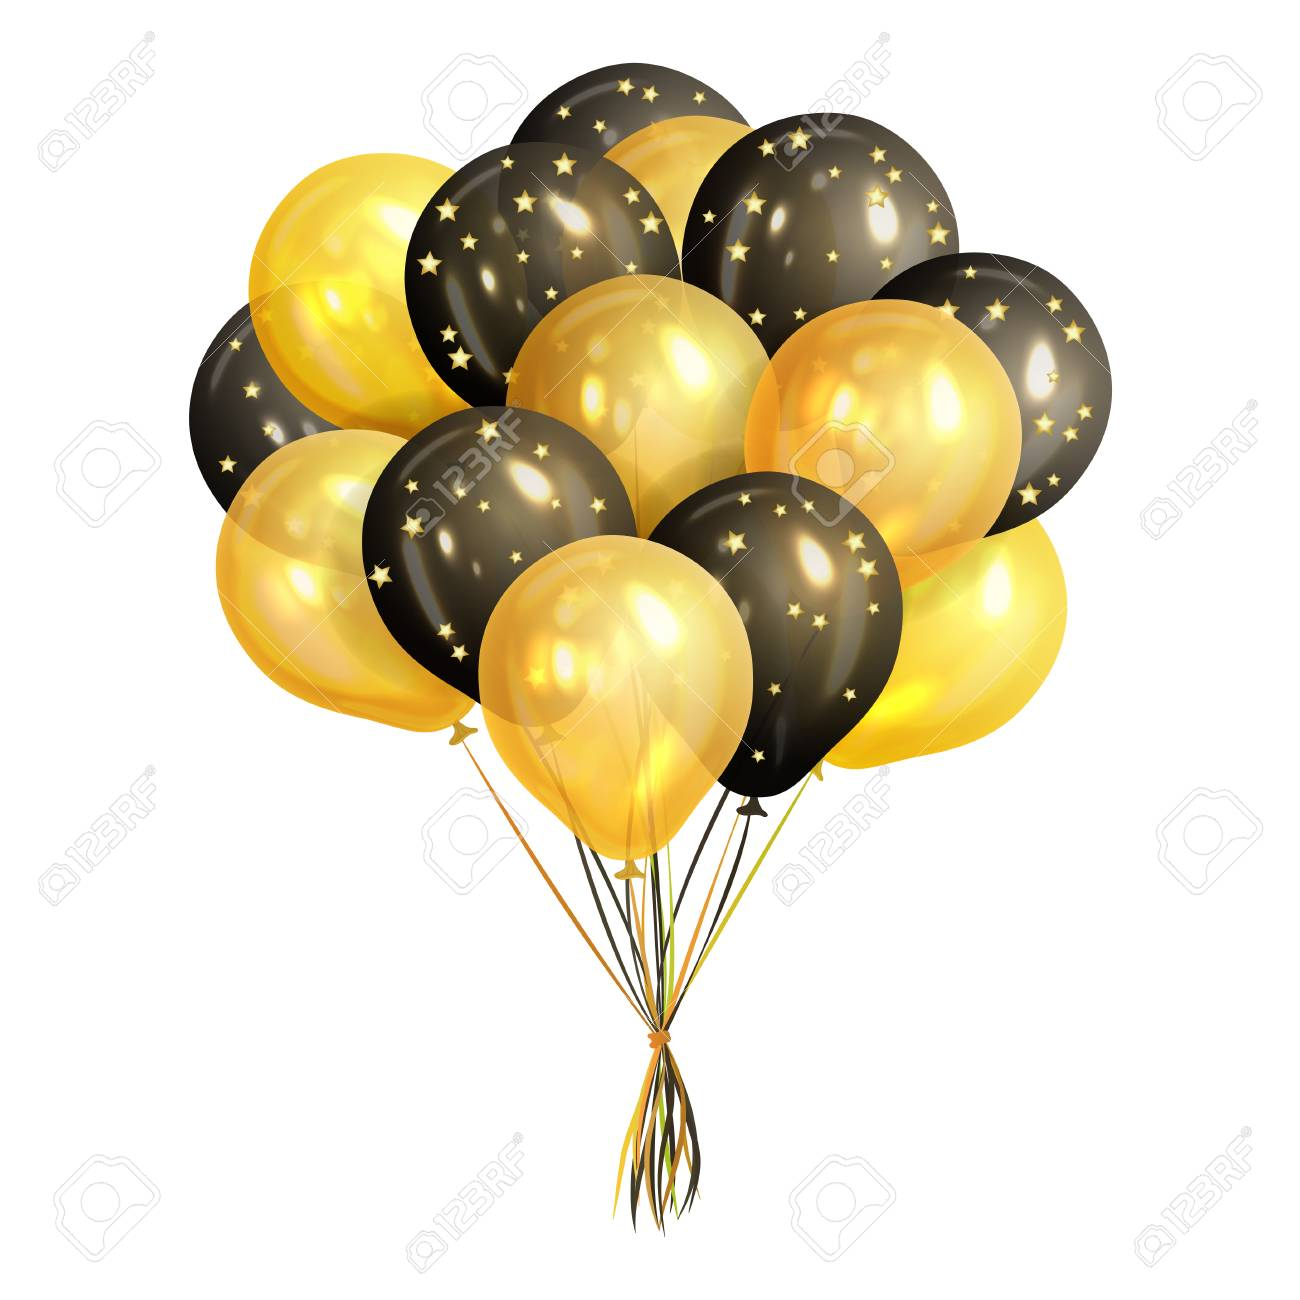 Bunch of realistic black and gold helium balloons isolated on...